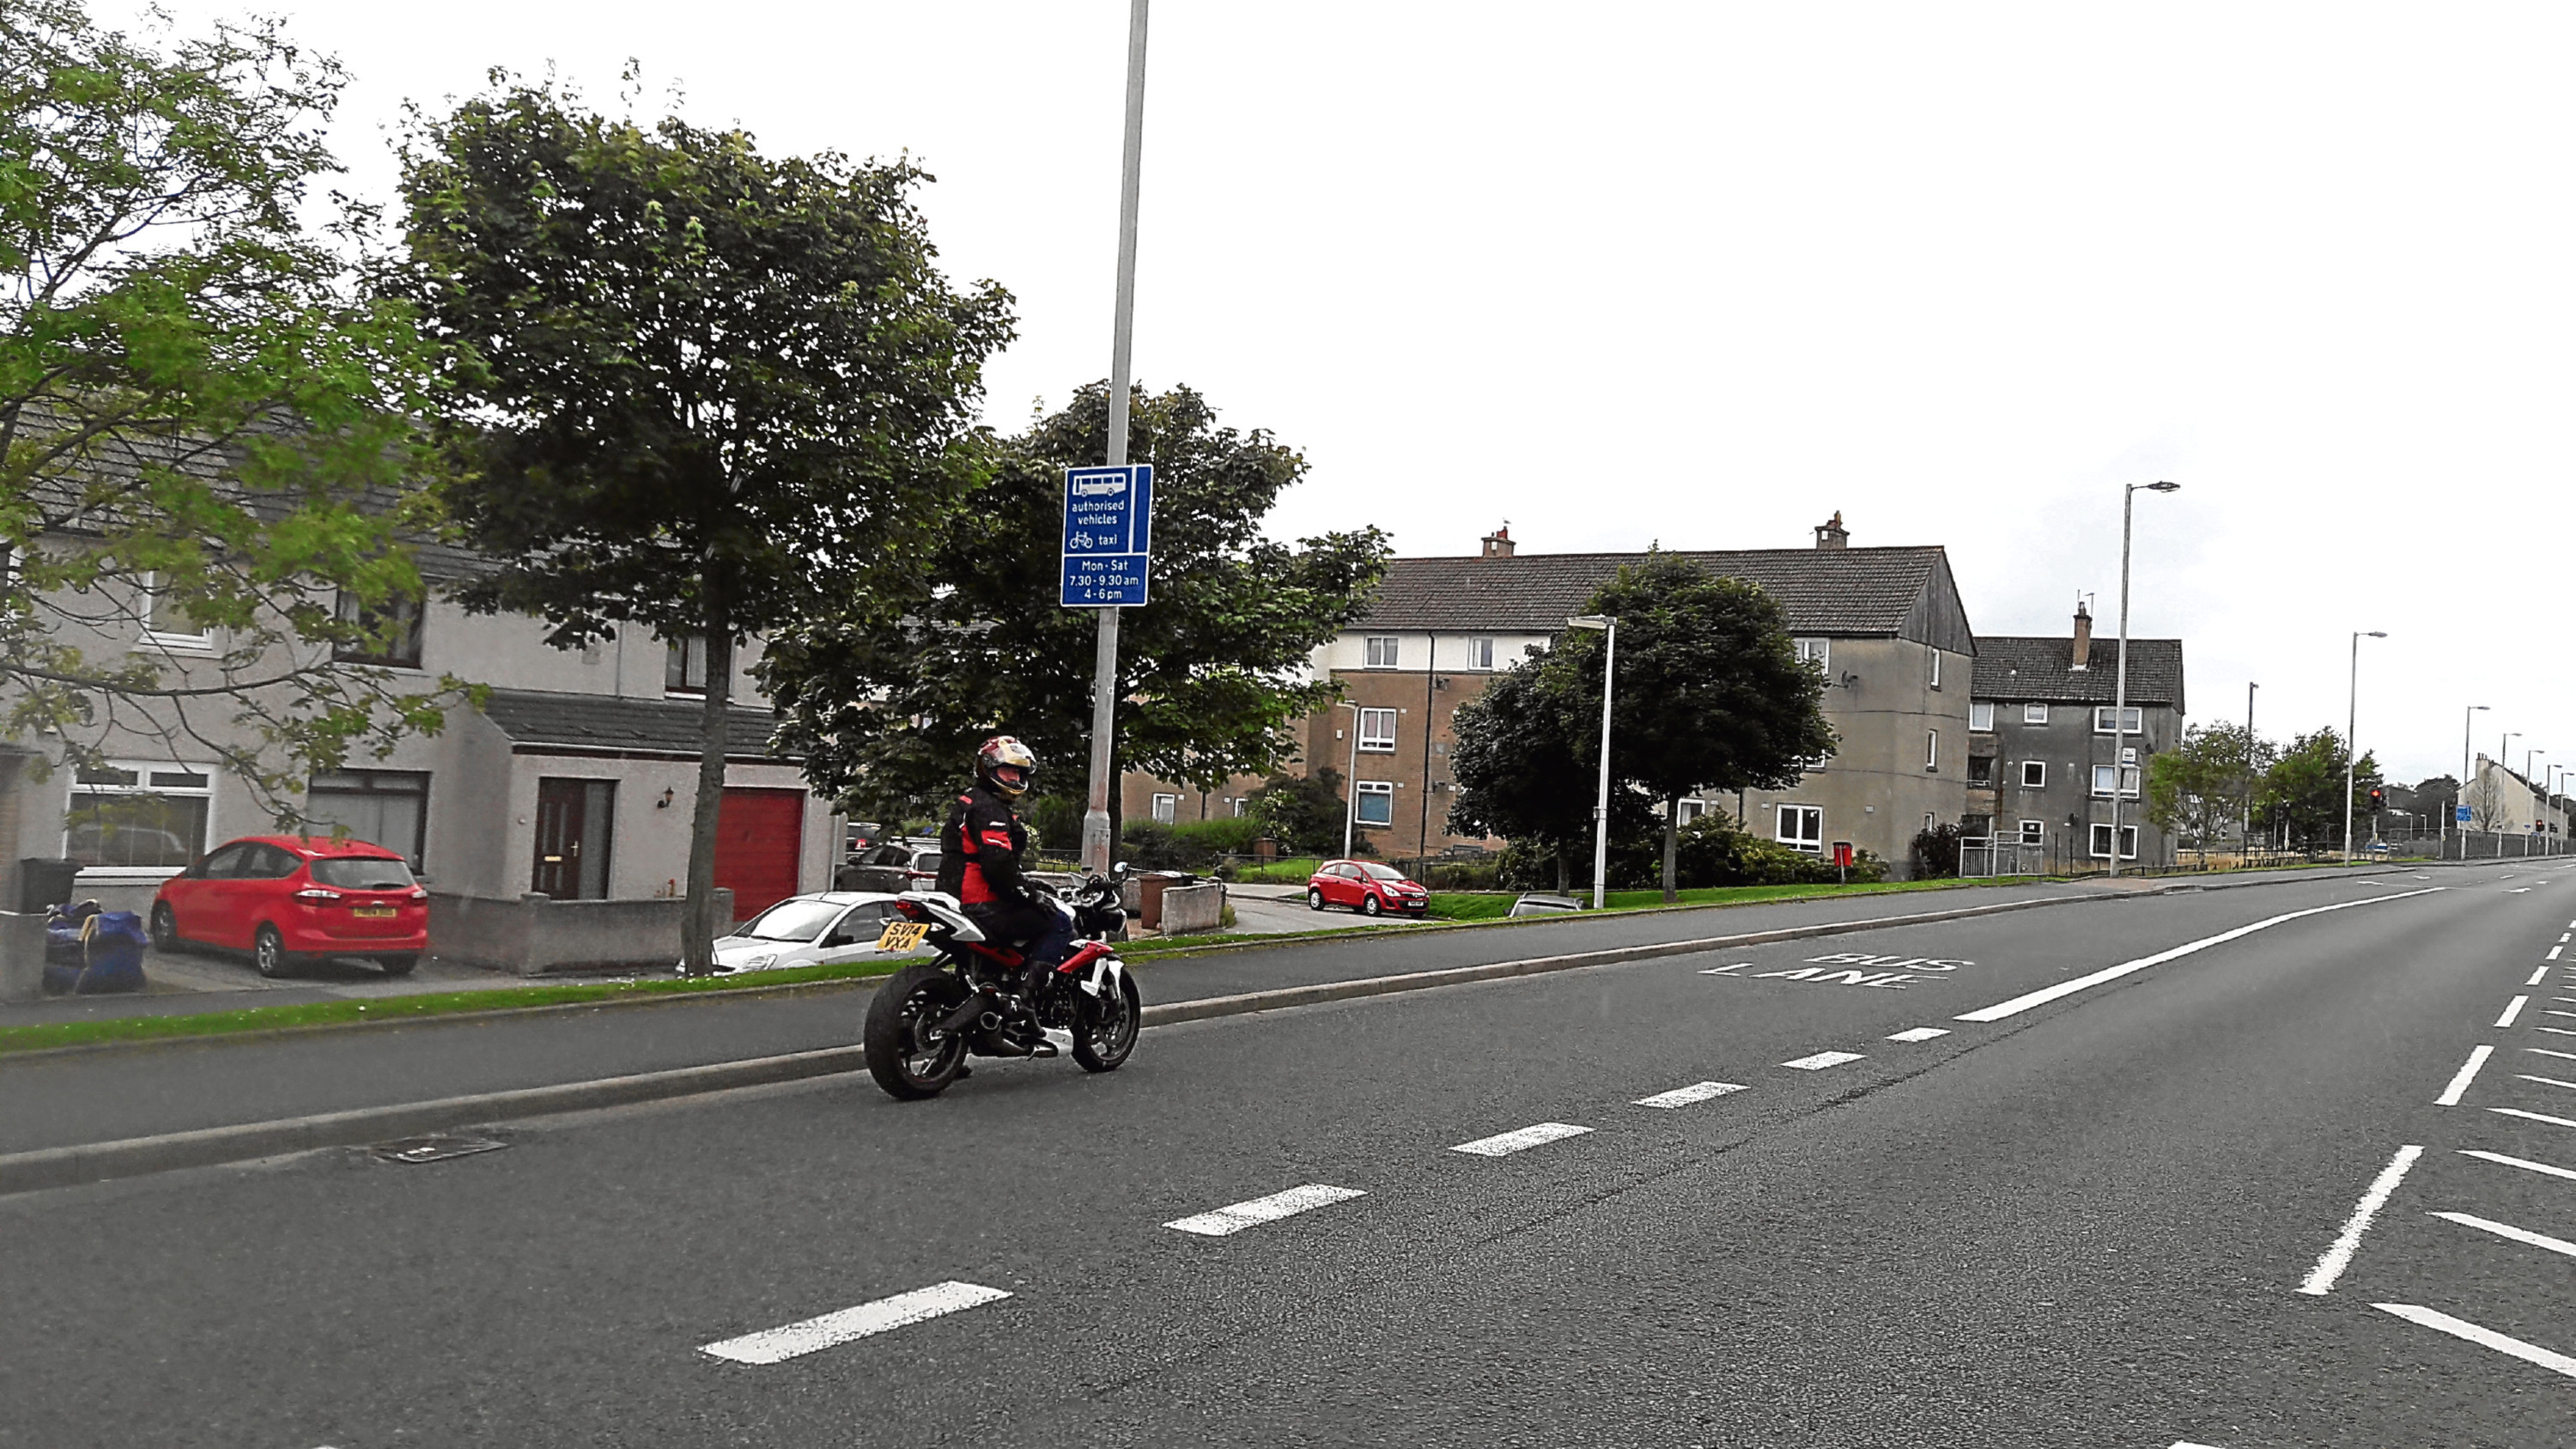 Stewart McCann, pictured, has launched a petition to allow motorbikes to use Aberdeen bus lanes.